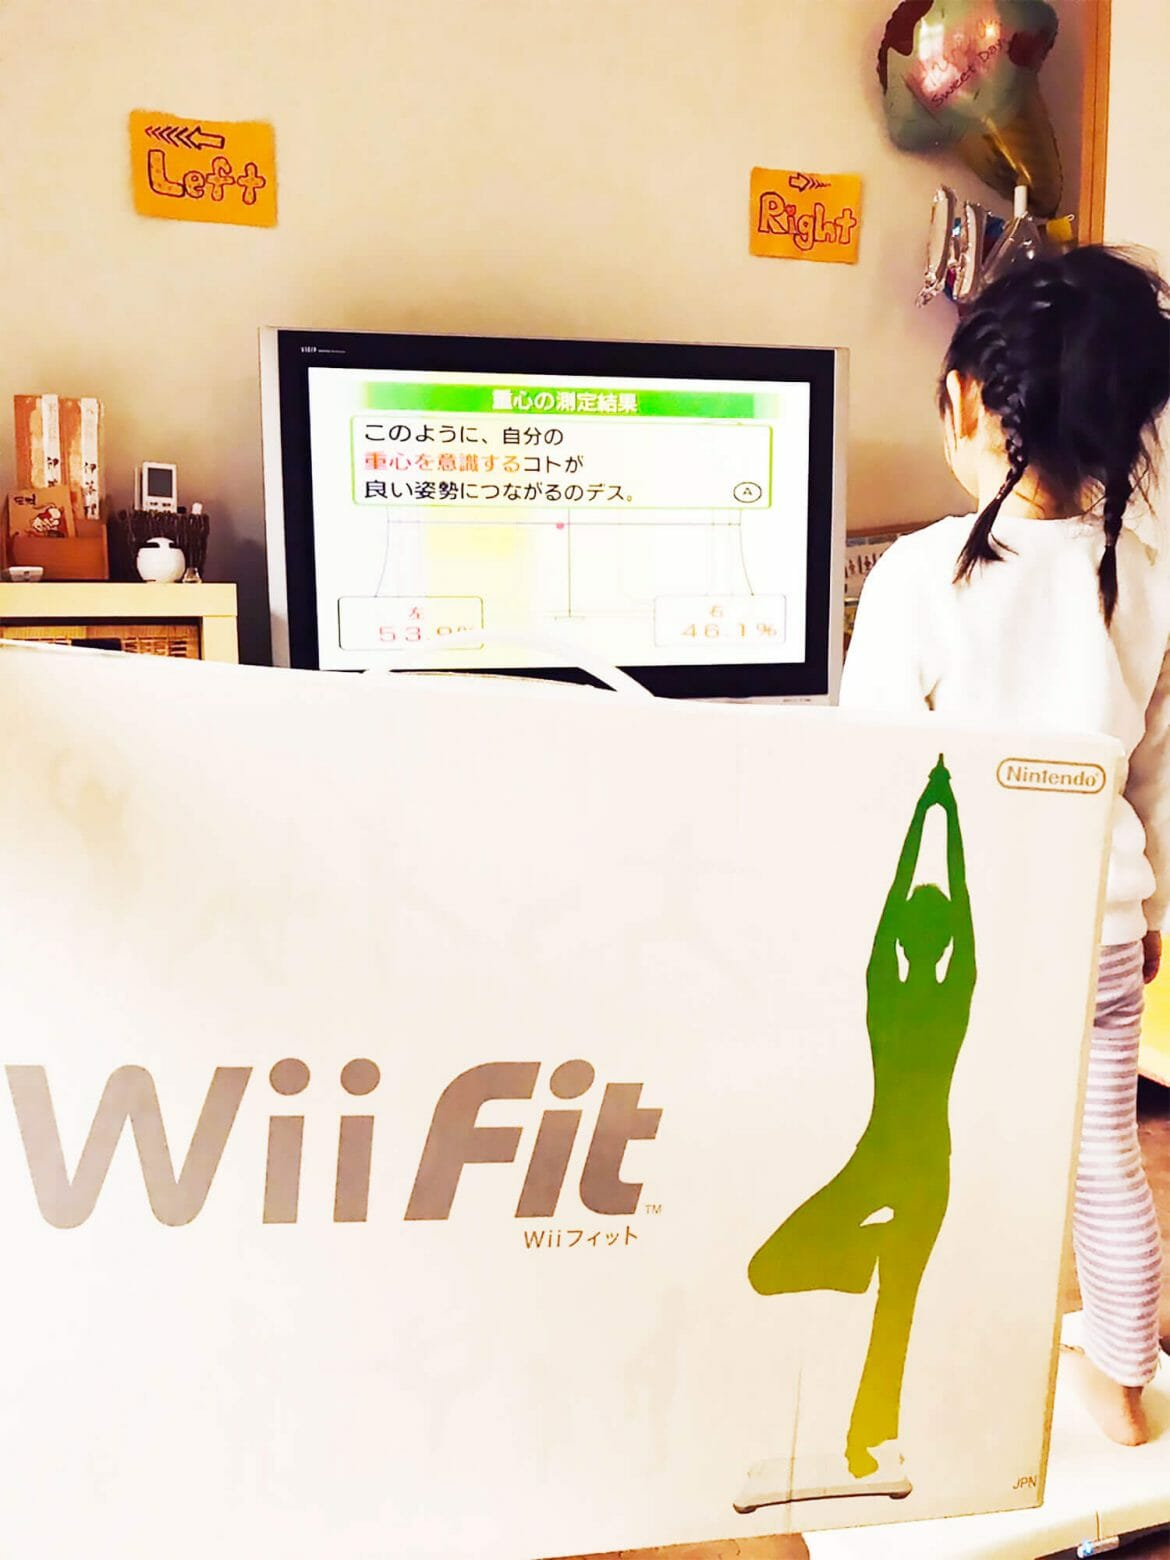 Wii Fit in Japan